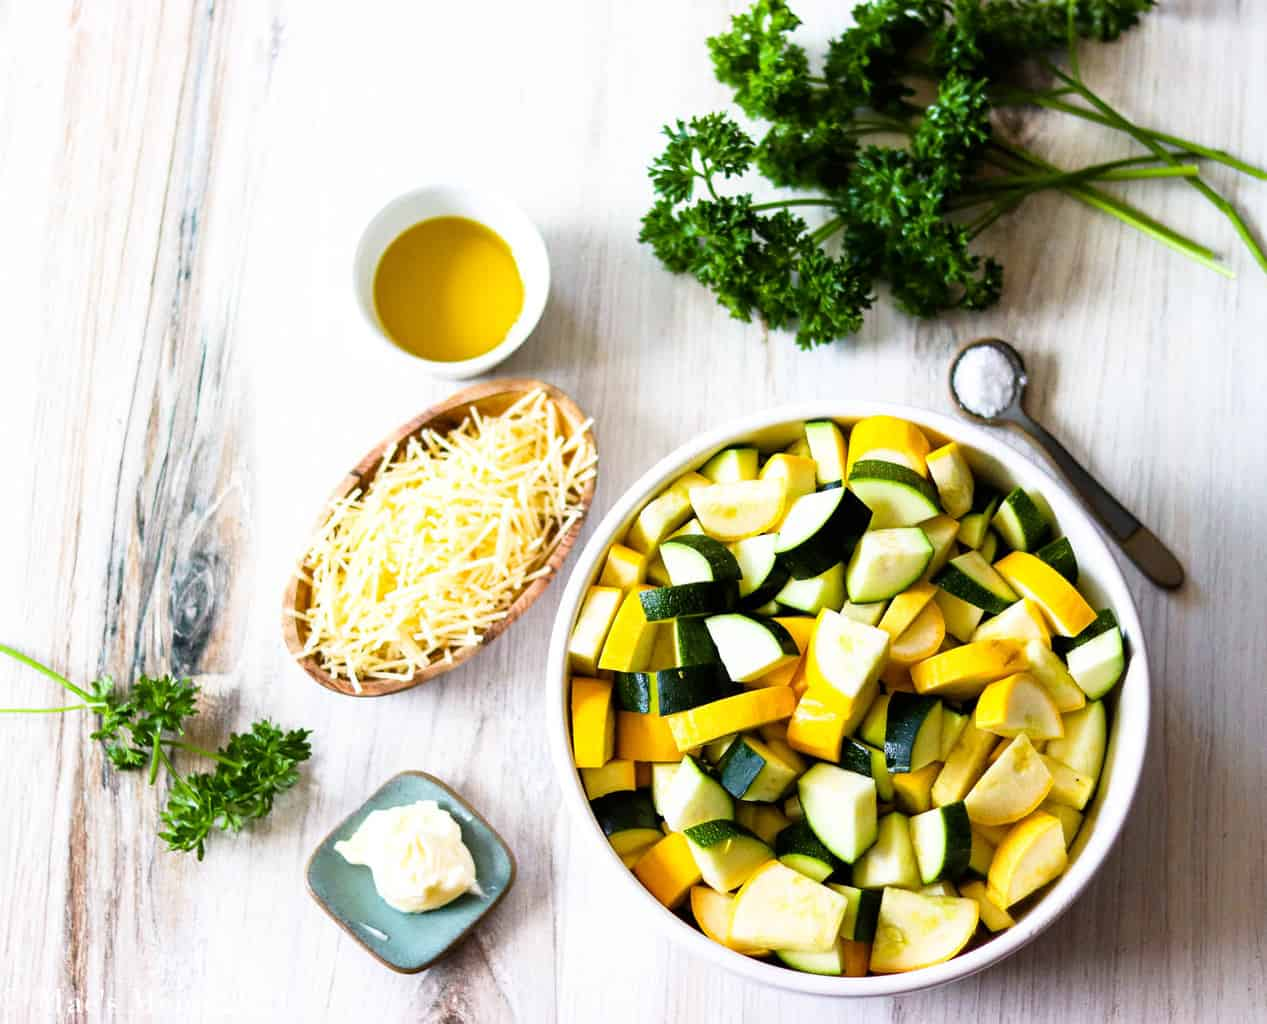 All the ingredients for sauteed zucchini and yellow squash: a bowl of zucchini, grated parmesan cheese, butter, salt, and parsley